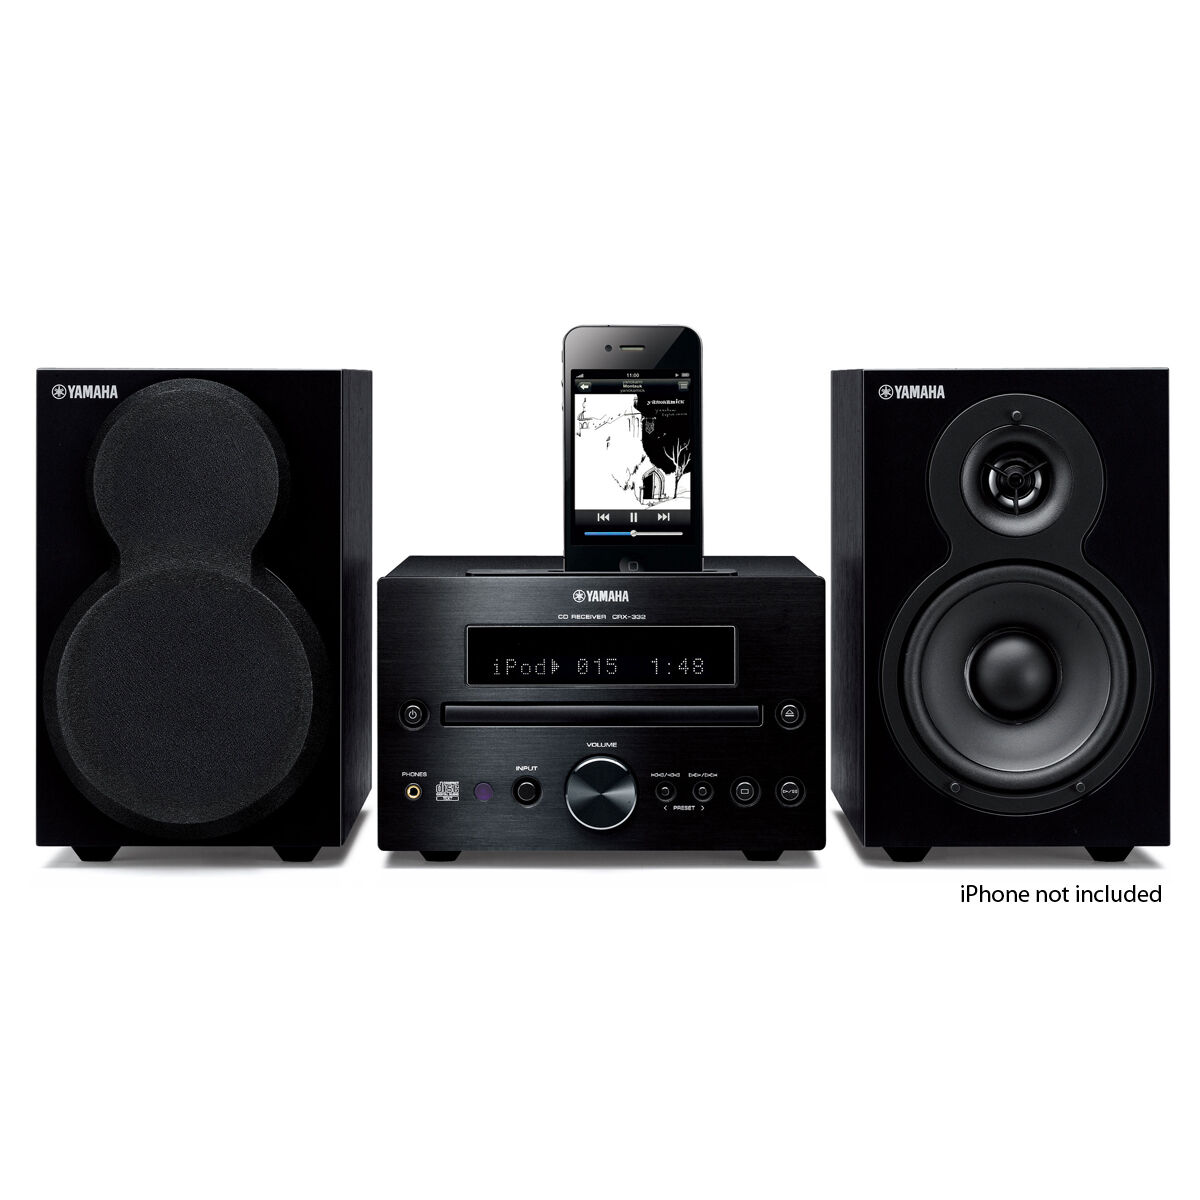 Yamaha Car Audio: Yamaha Shelf STEREO SYSTEM With CD USB Radio & IPod Dock